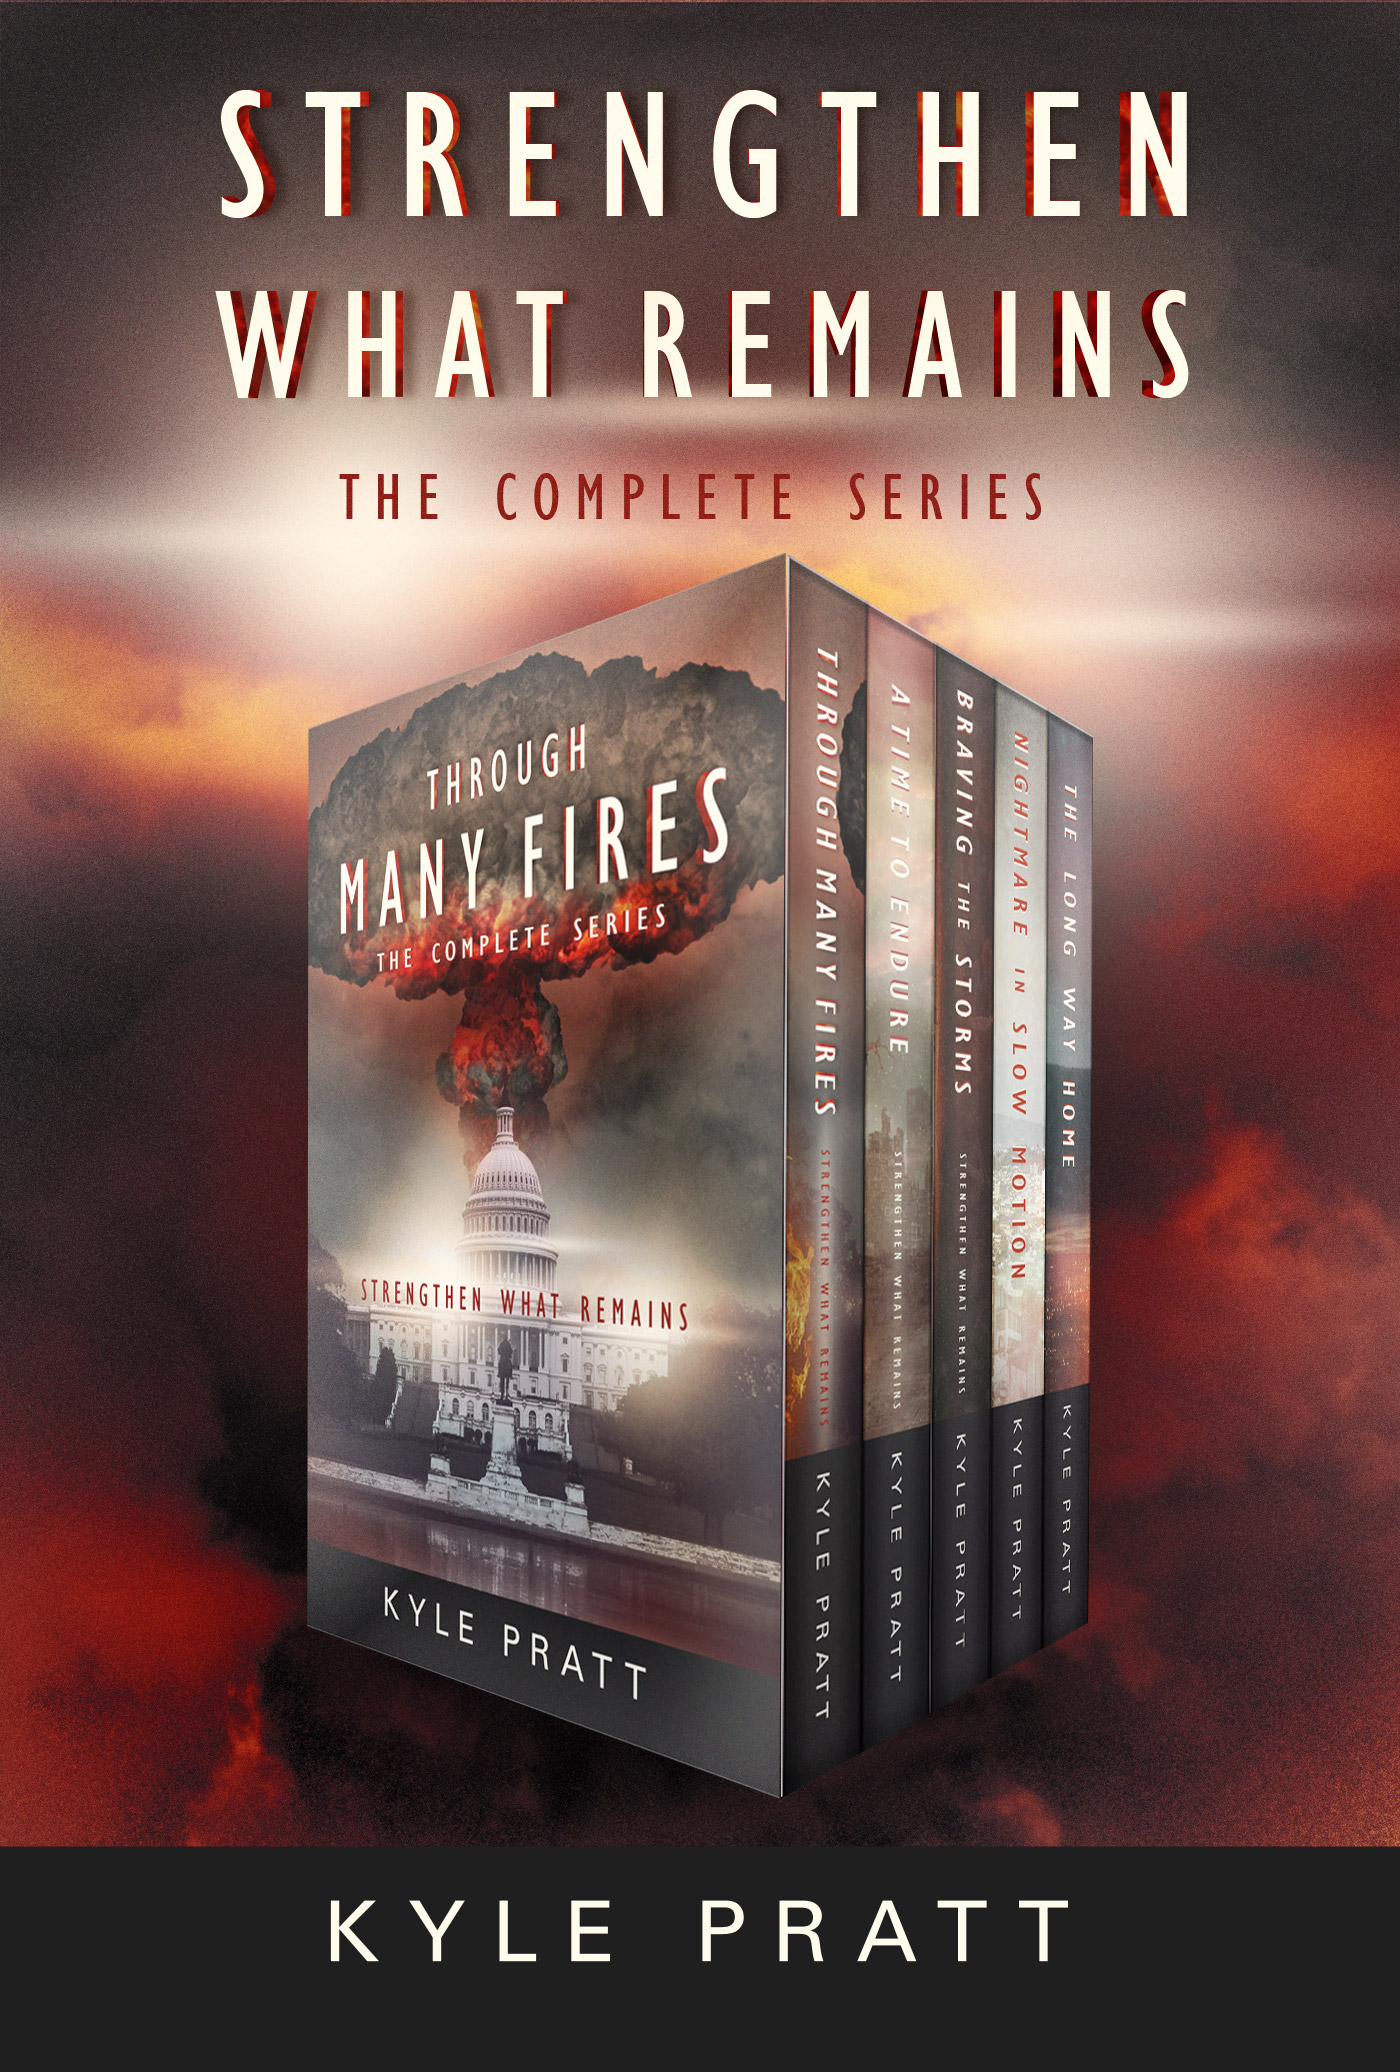 The Strengthen What Remains Boxset   That's right, the entire Strengthen What Remains series in one ebook box set--nearly 250,000 words of post-apocalyptic action-adventure.  This box set includes   Through Many Fires    ,    A Time to Endure   ,    Braving the Storms   ,    Nightmare in Slow Motion   , and    The Long Way Home   .